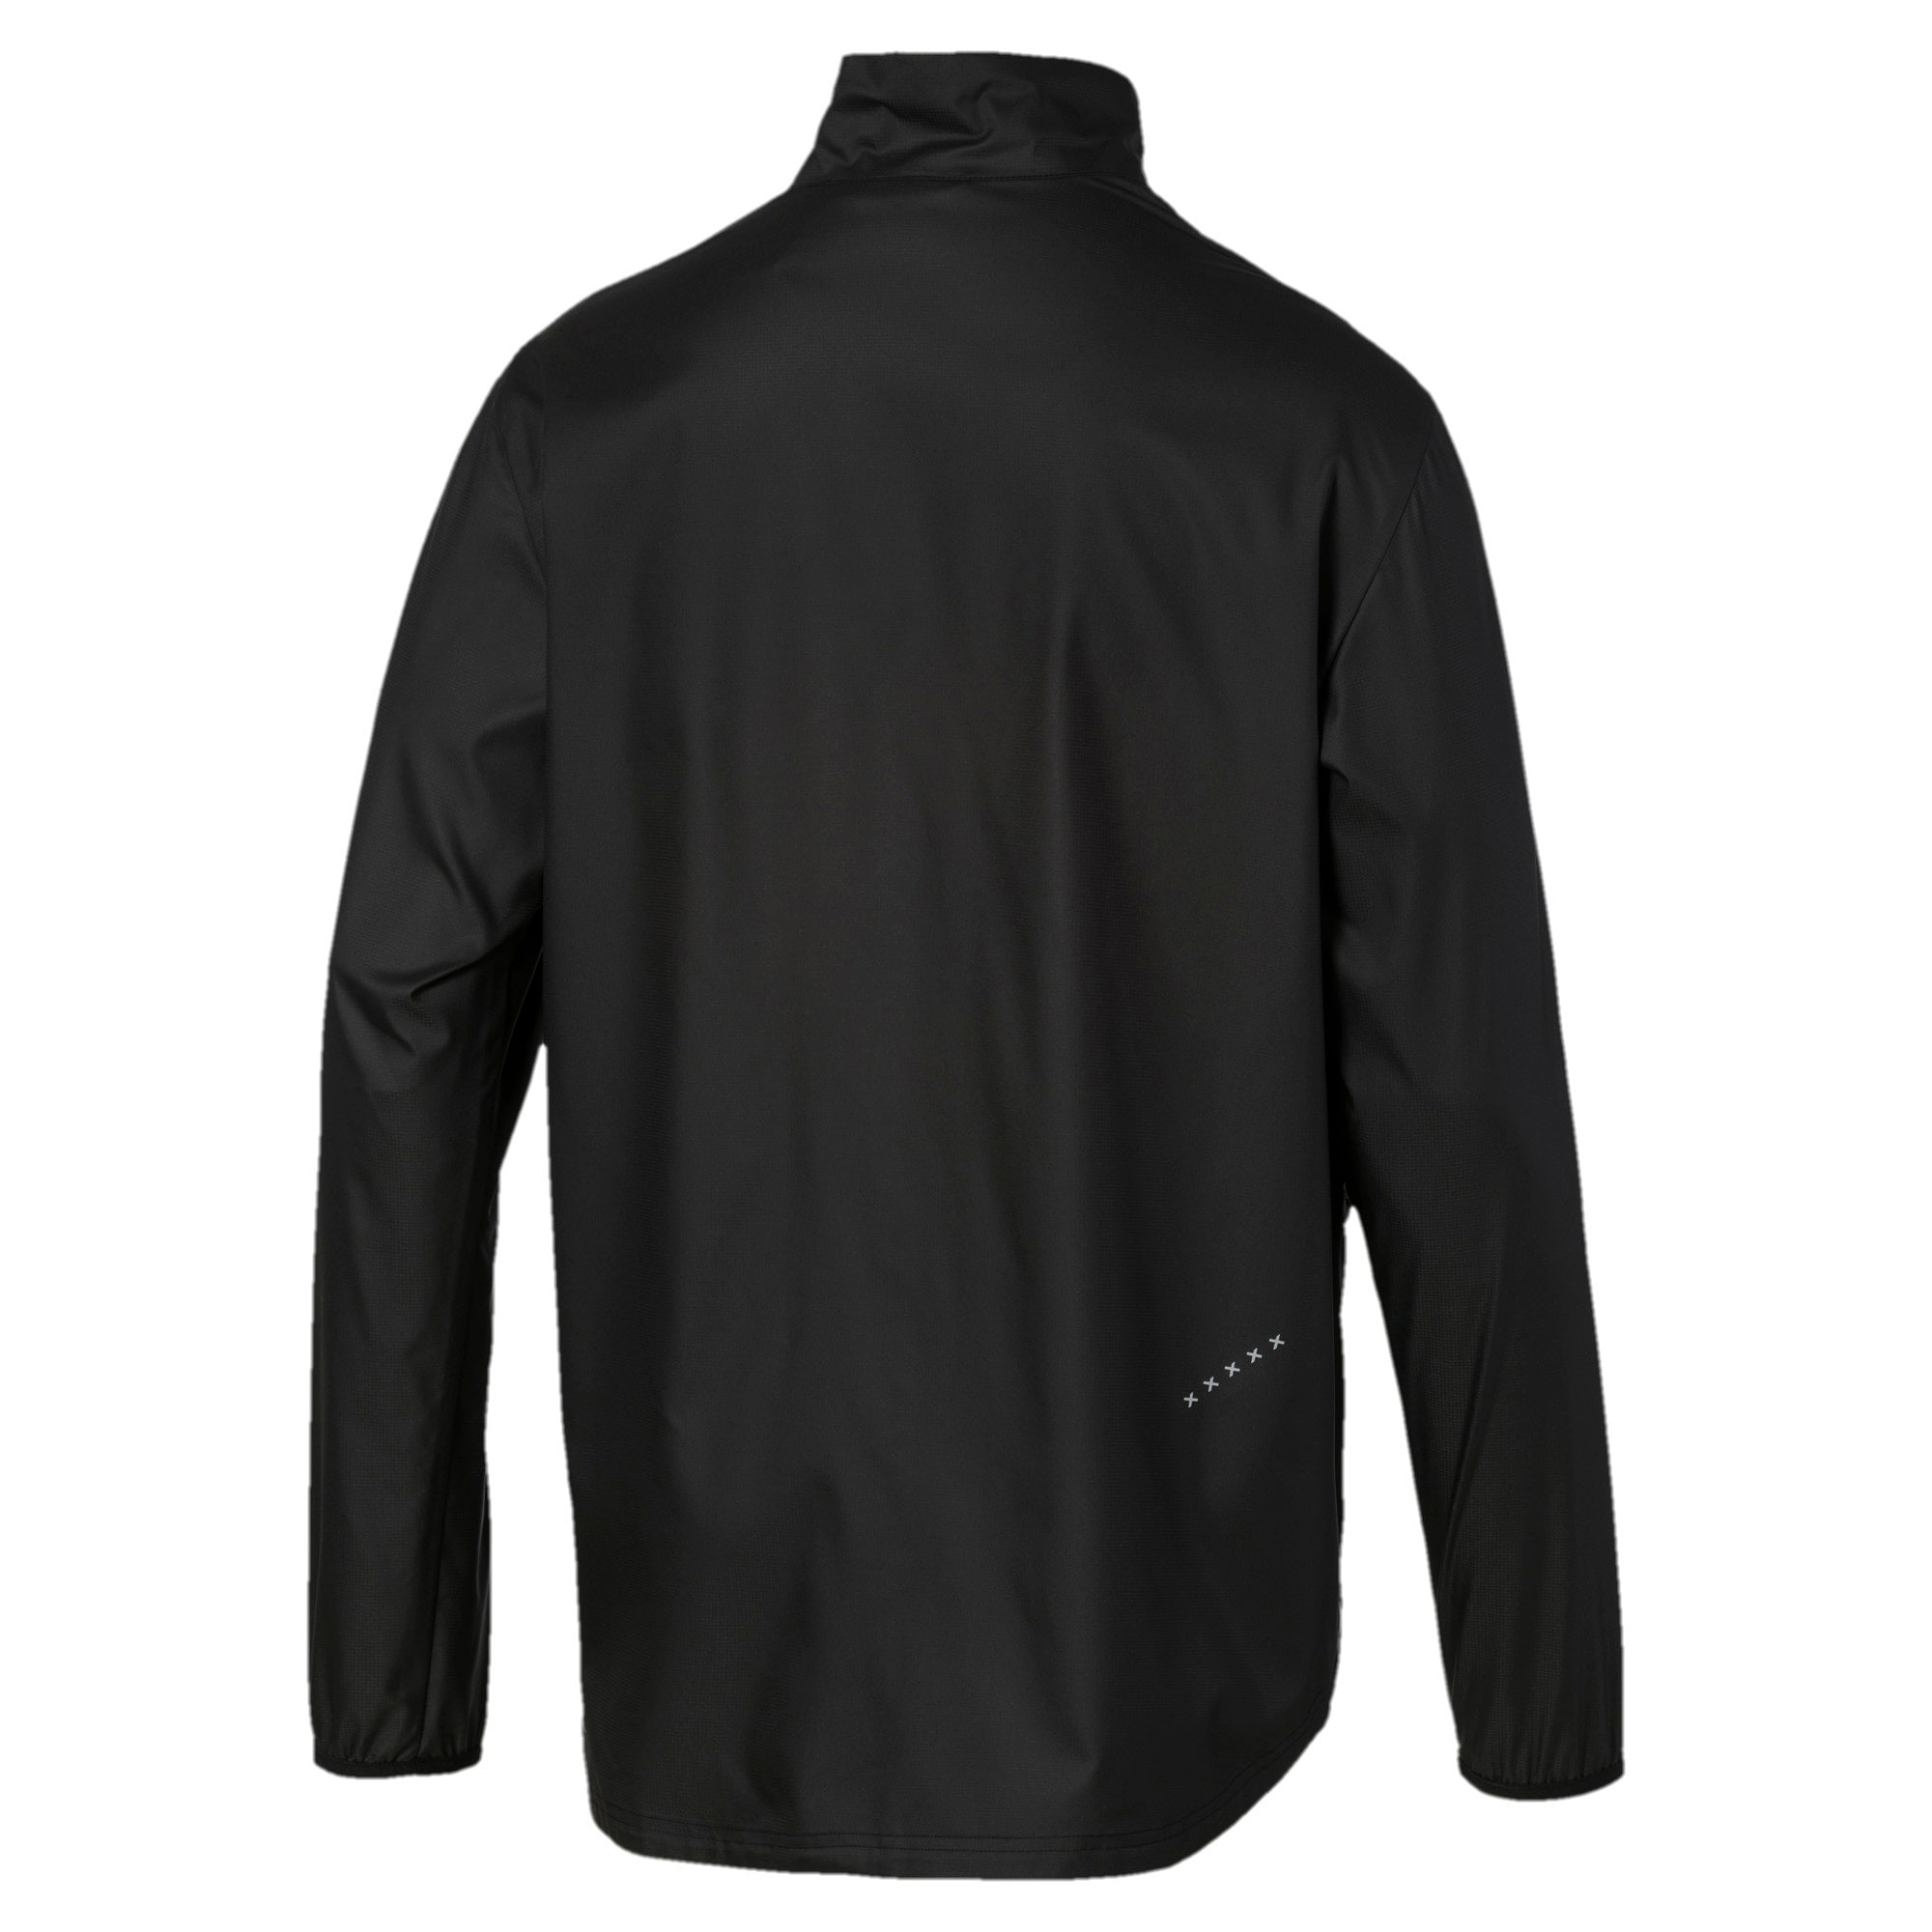 Thumbnail 5 of IGNITE Woven Men's Running Track Jacket, Puma Black-Puma Black, medium